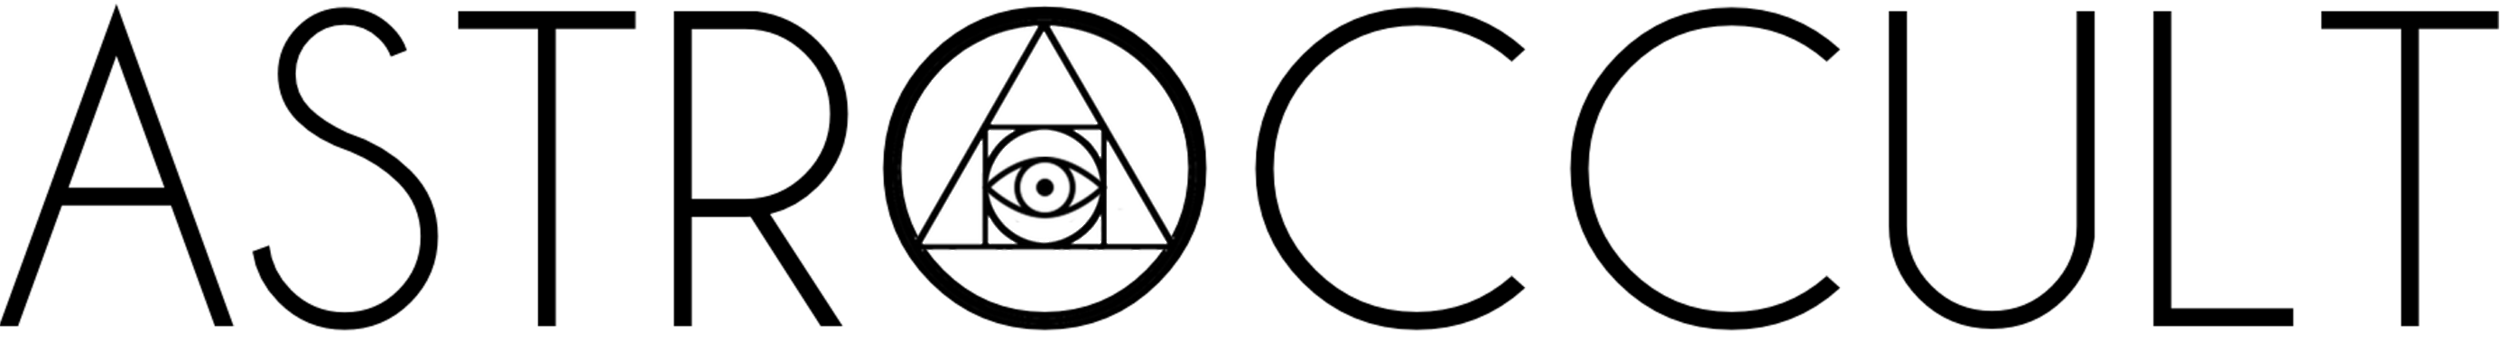 Astroccult Logo No back 2.png